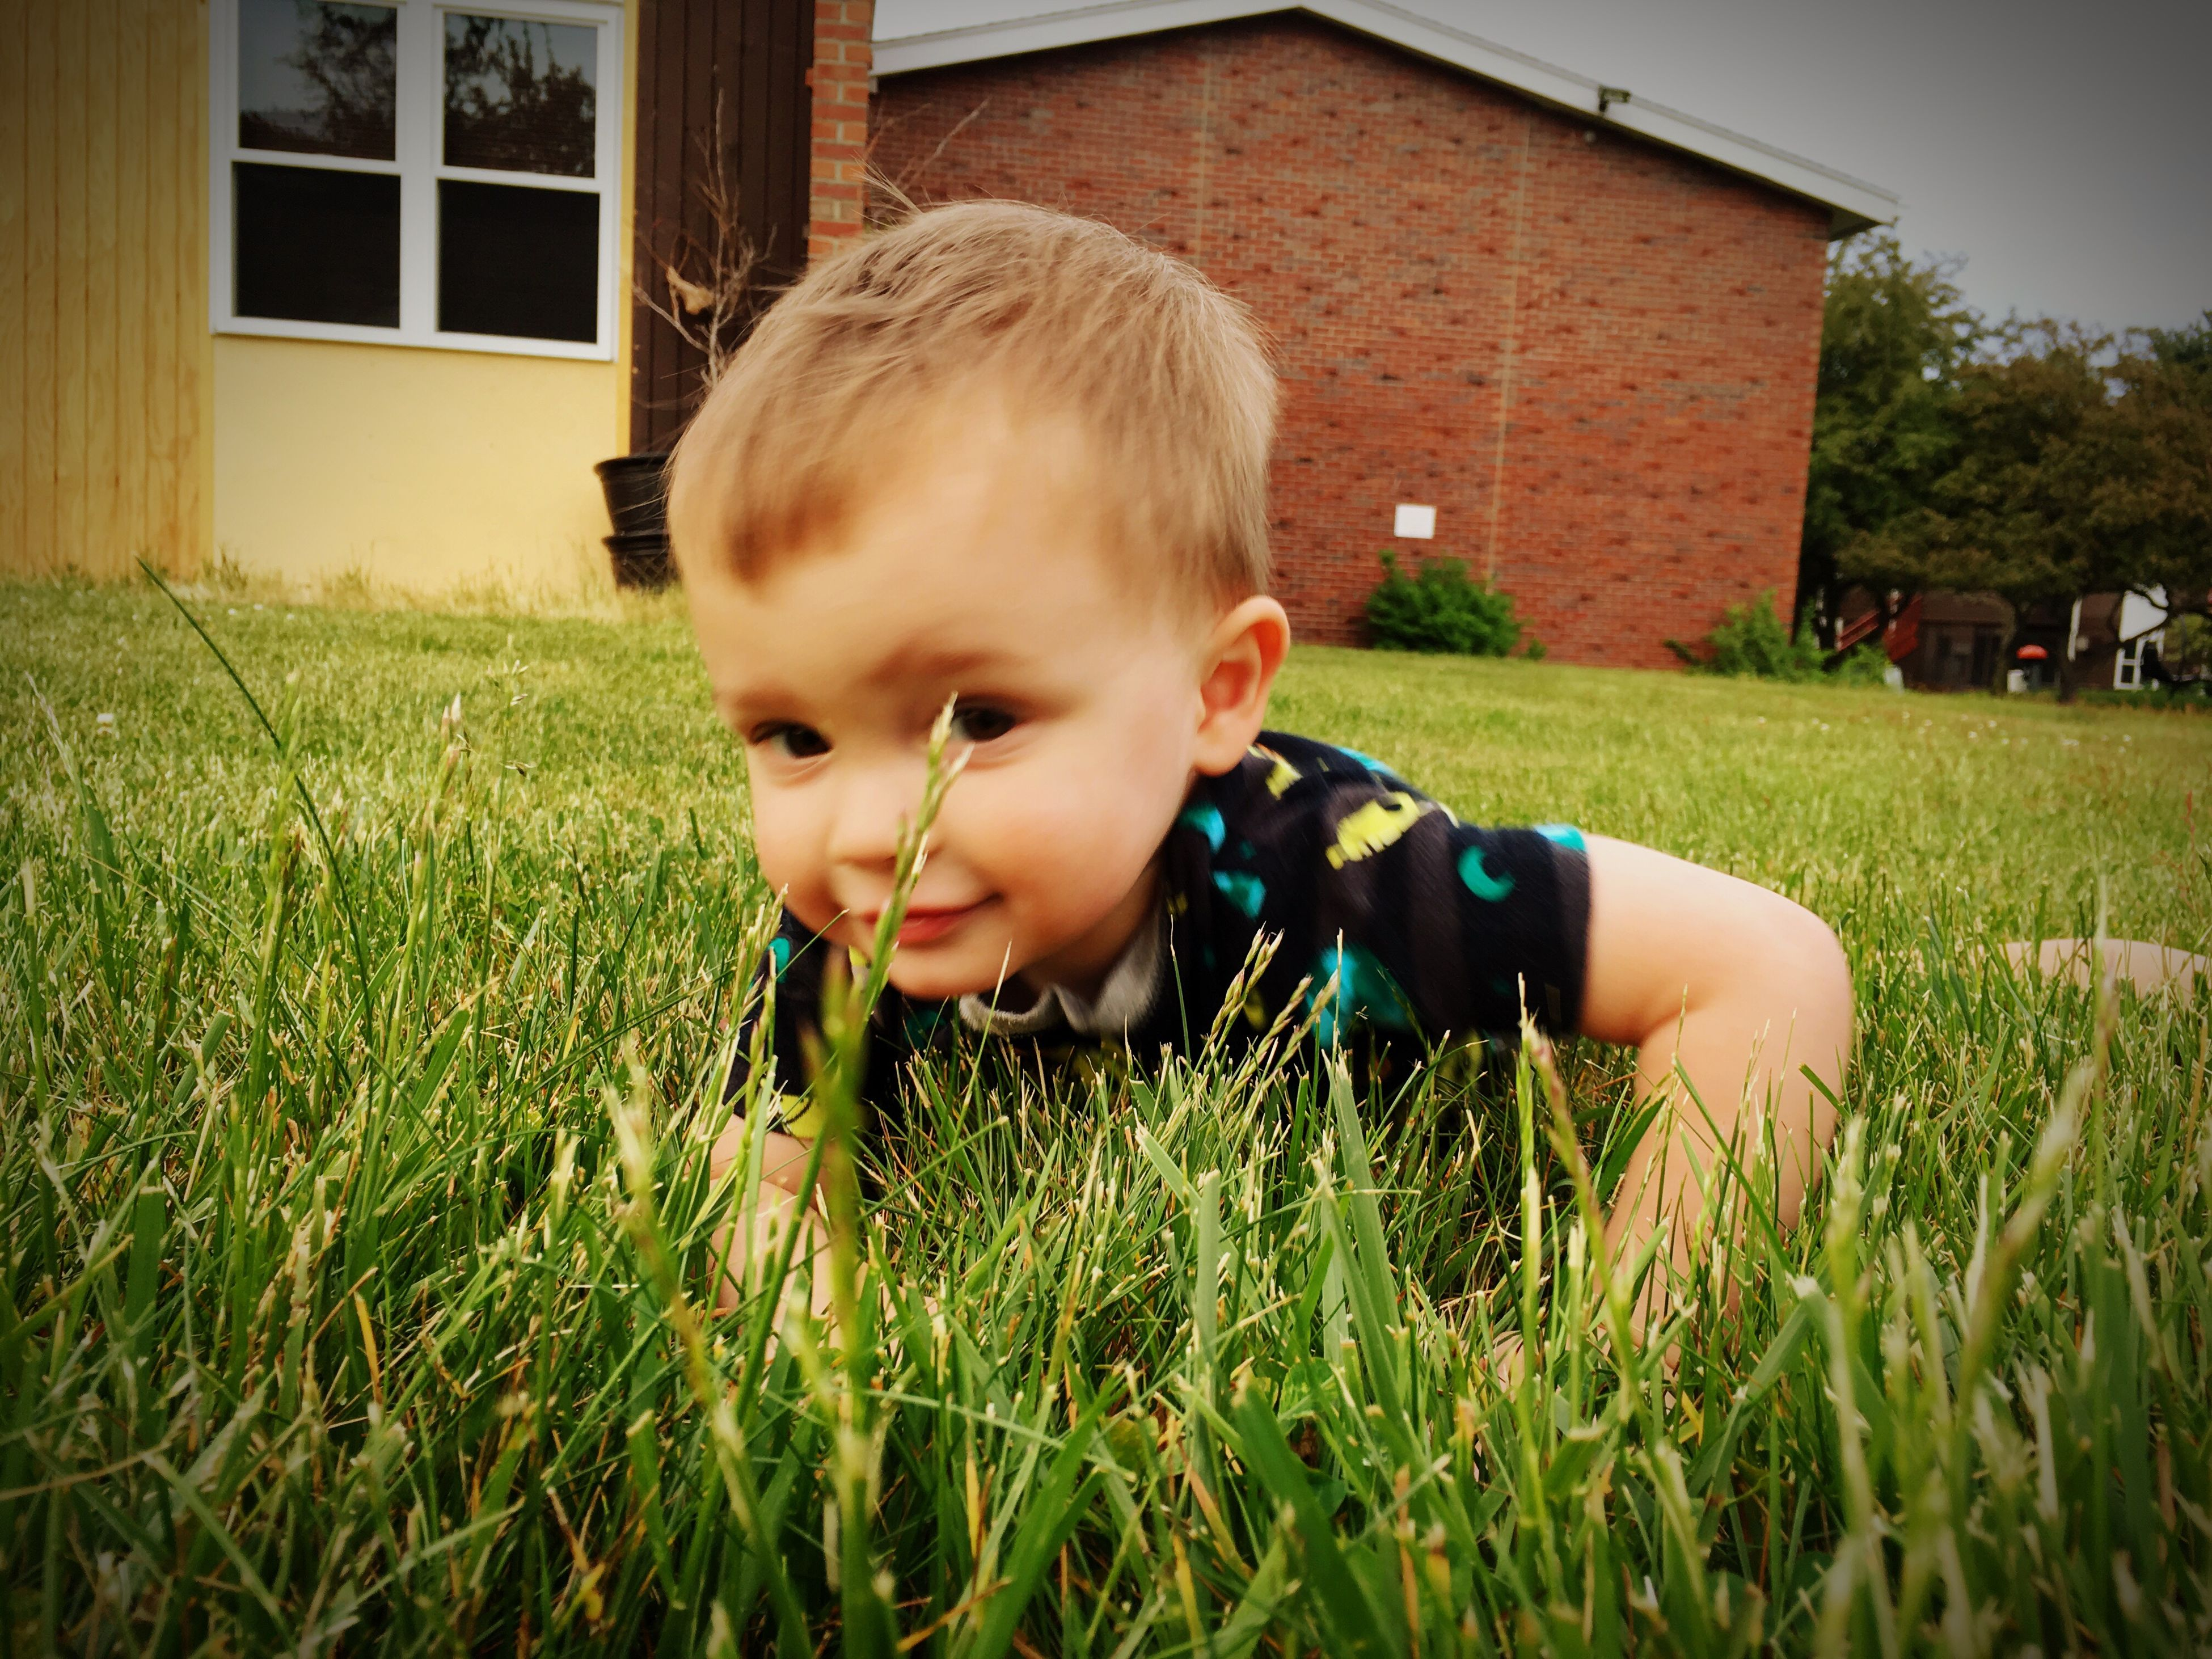 grass, childhood, elementary age, grassy, boys, innocence, field, person, cute, lawn, lifestyles, leisure activity, girls, casual clothing, green color, front or back yard, built structure, architecture